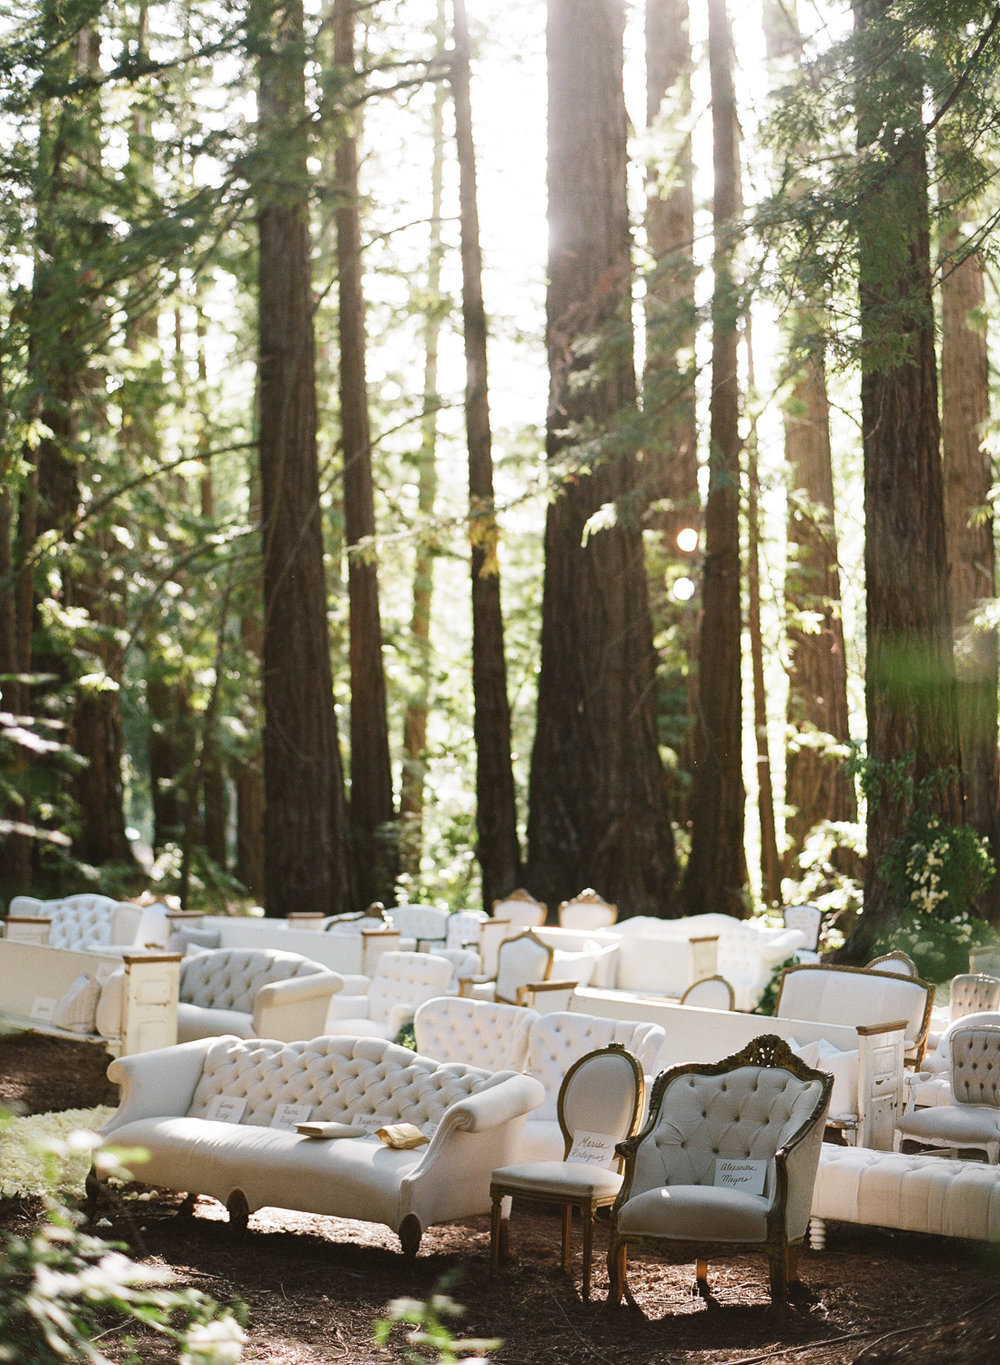 Eclectic vintage found seating for the ceremony among redwood trees in the Santa Lucia Preserve; Sylvie Gil Photography